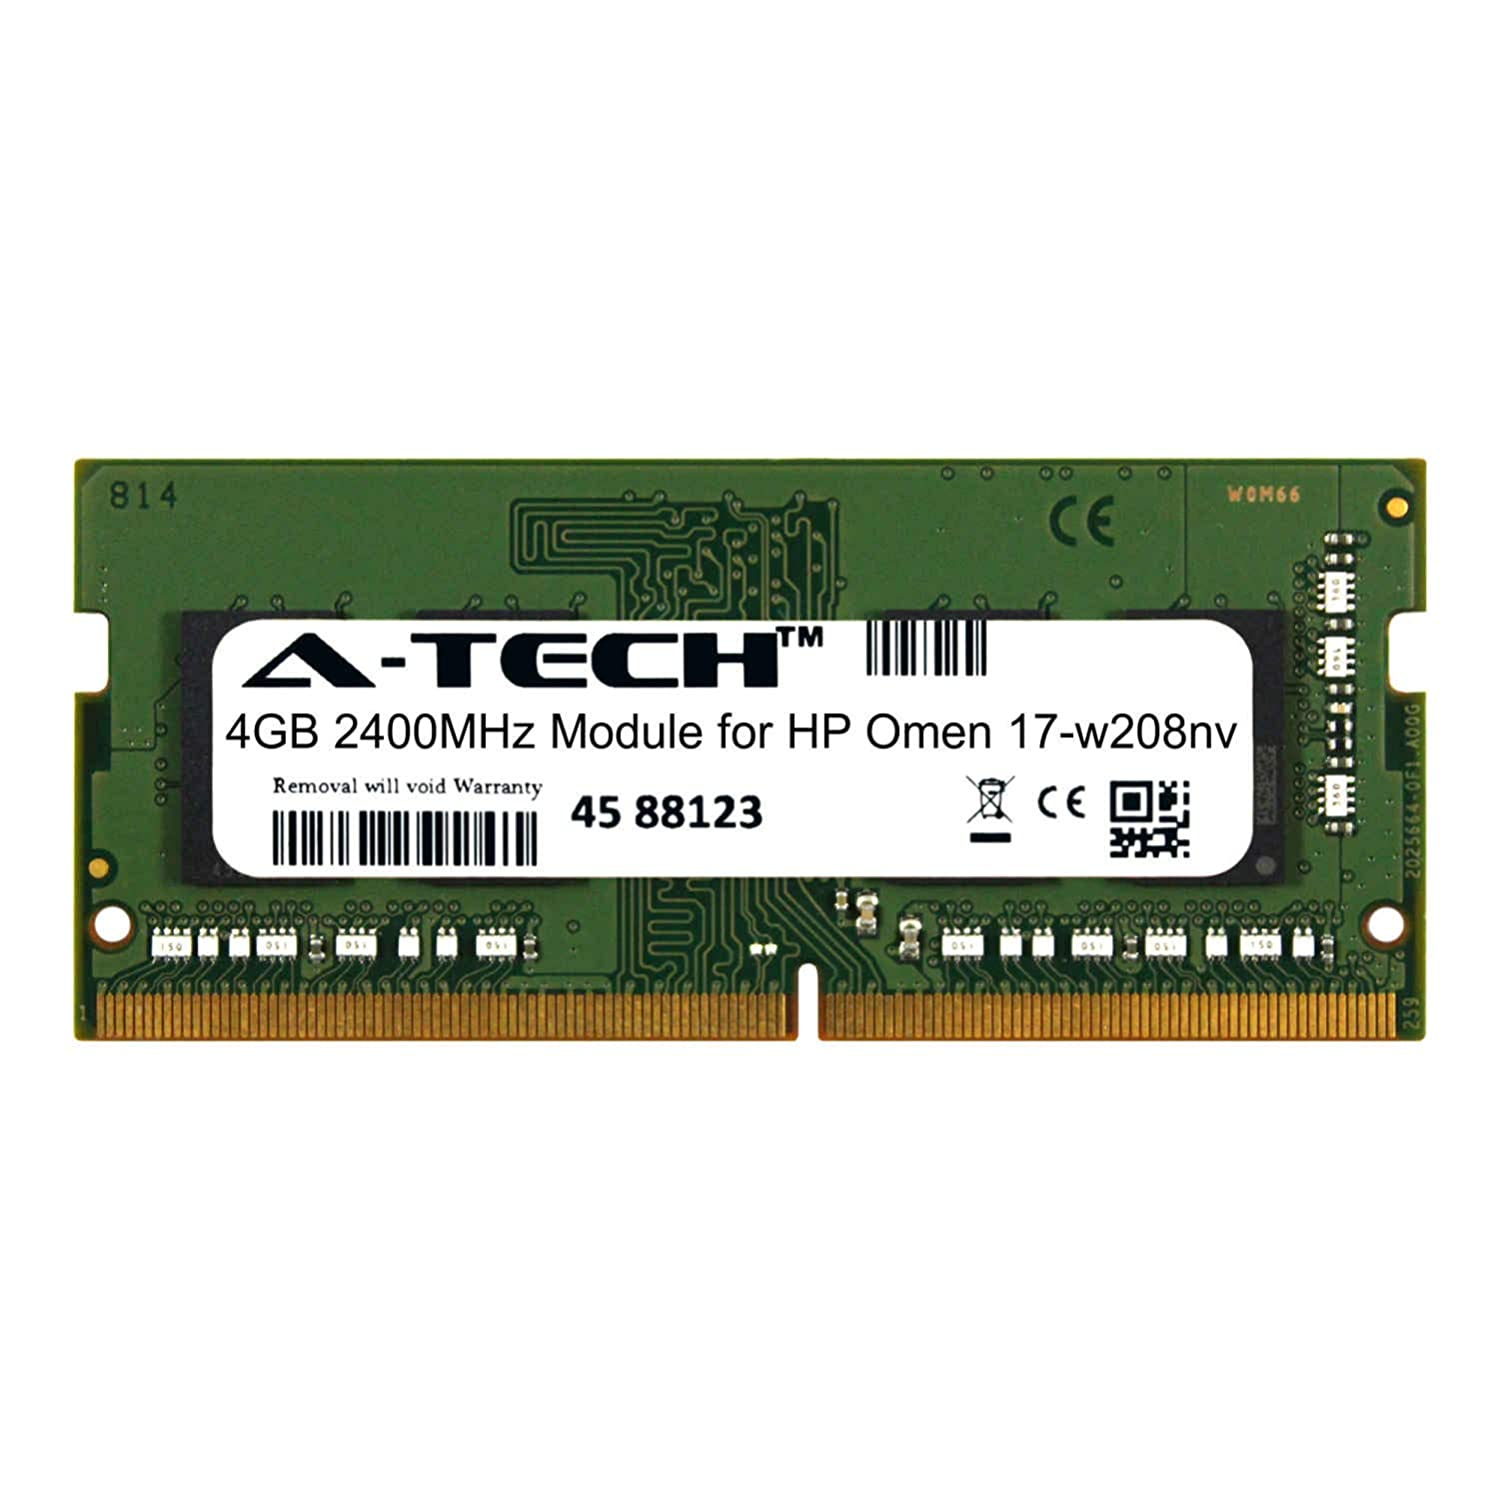 A-Tech 4GB Module for HP Omen 17-w208nv Laptop & Notebook Compatible DDR4 2400Mhz Memory Ram (ATMS281664A25824X1)